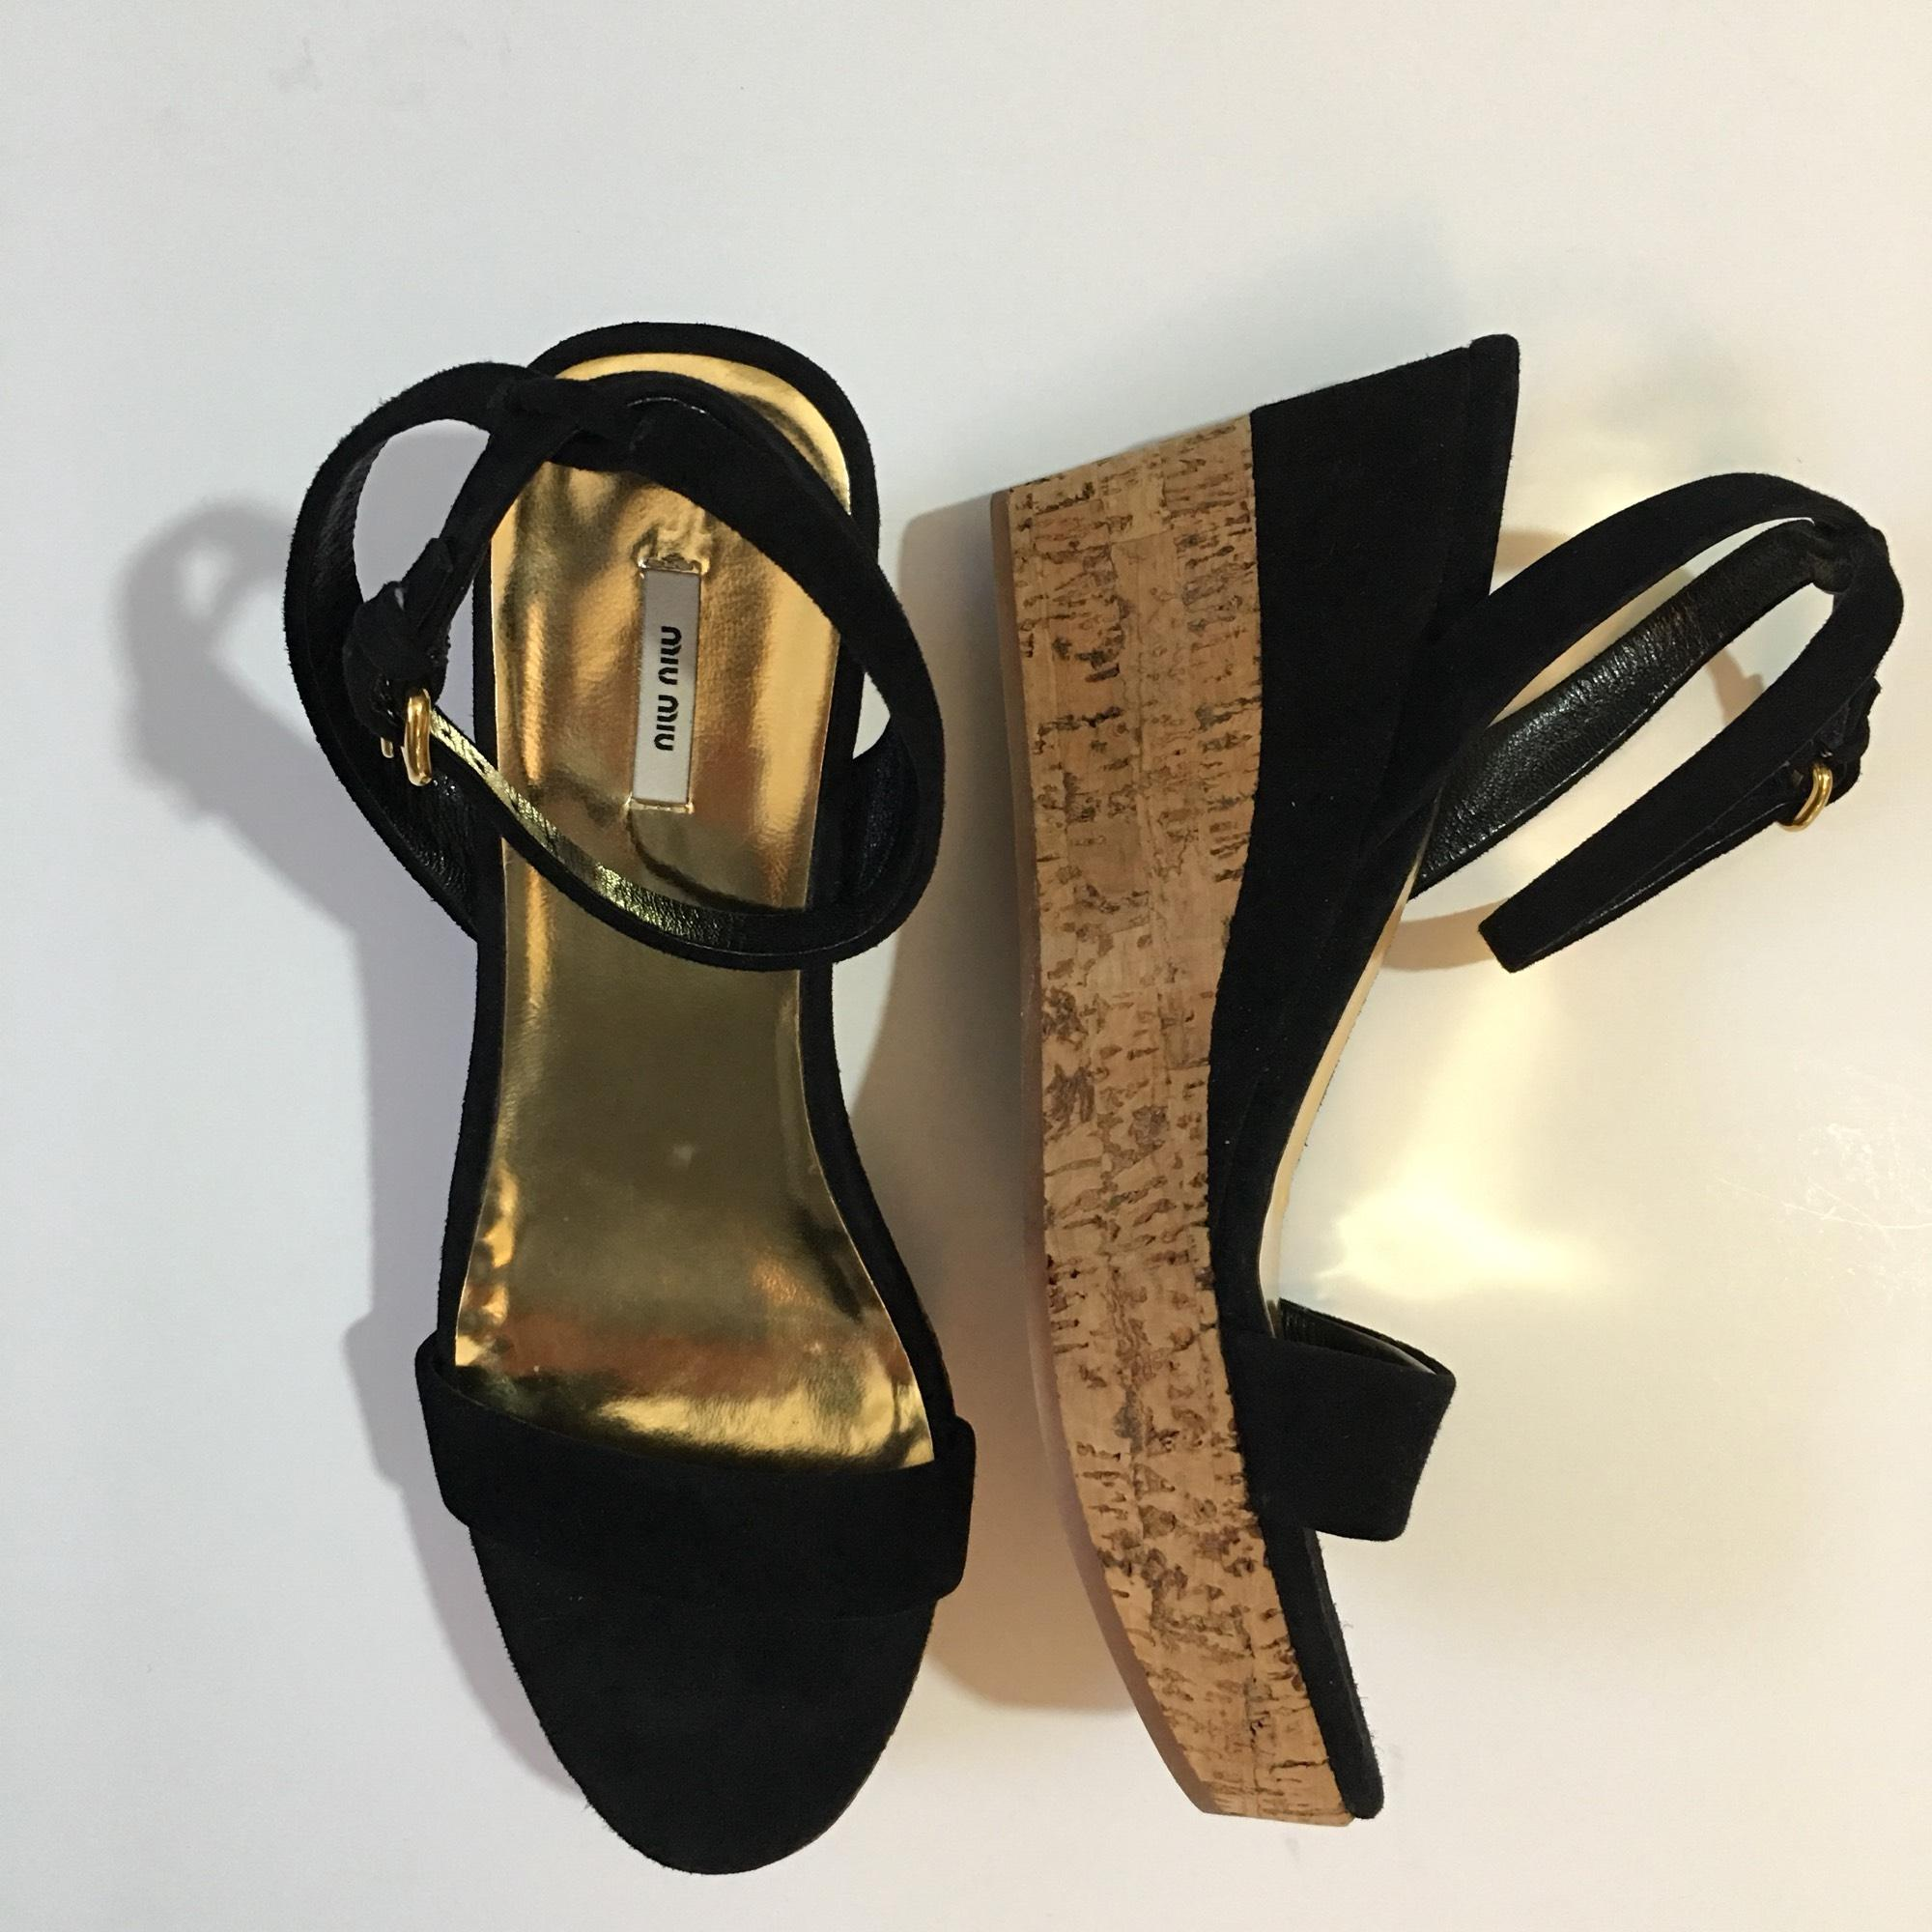 2e6f1ed33e1b ... B Miu Miu Miu Miu Black Cork Wedge Sandals Size US 5.5 Regular (M